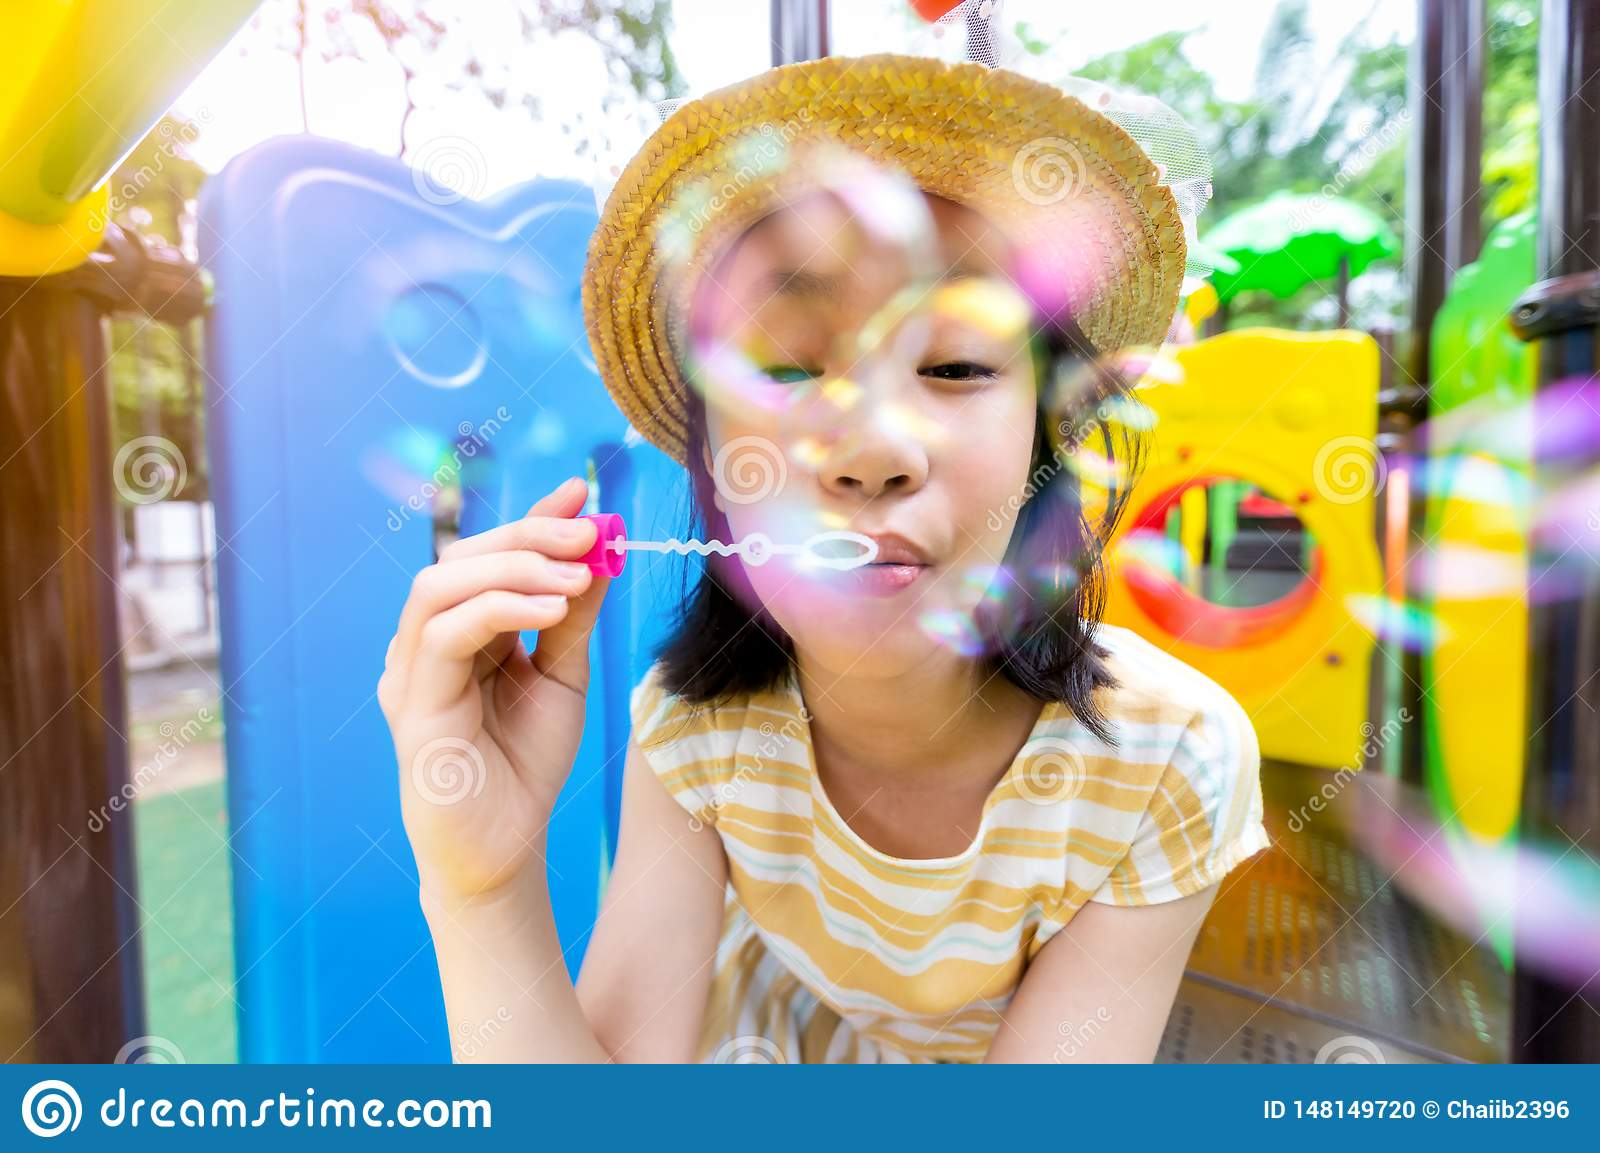 Asian Little Girl Blowing Bubbles On A Playground Outdoor